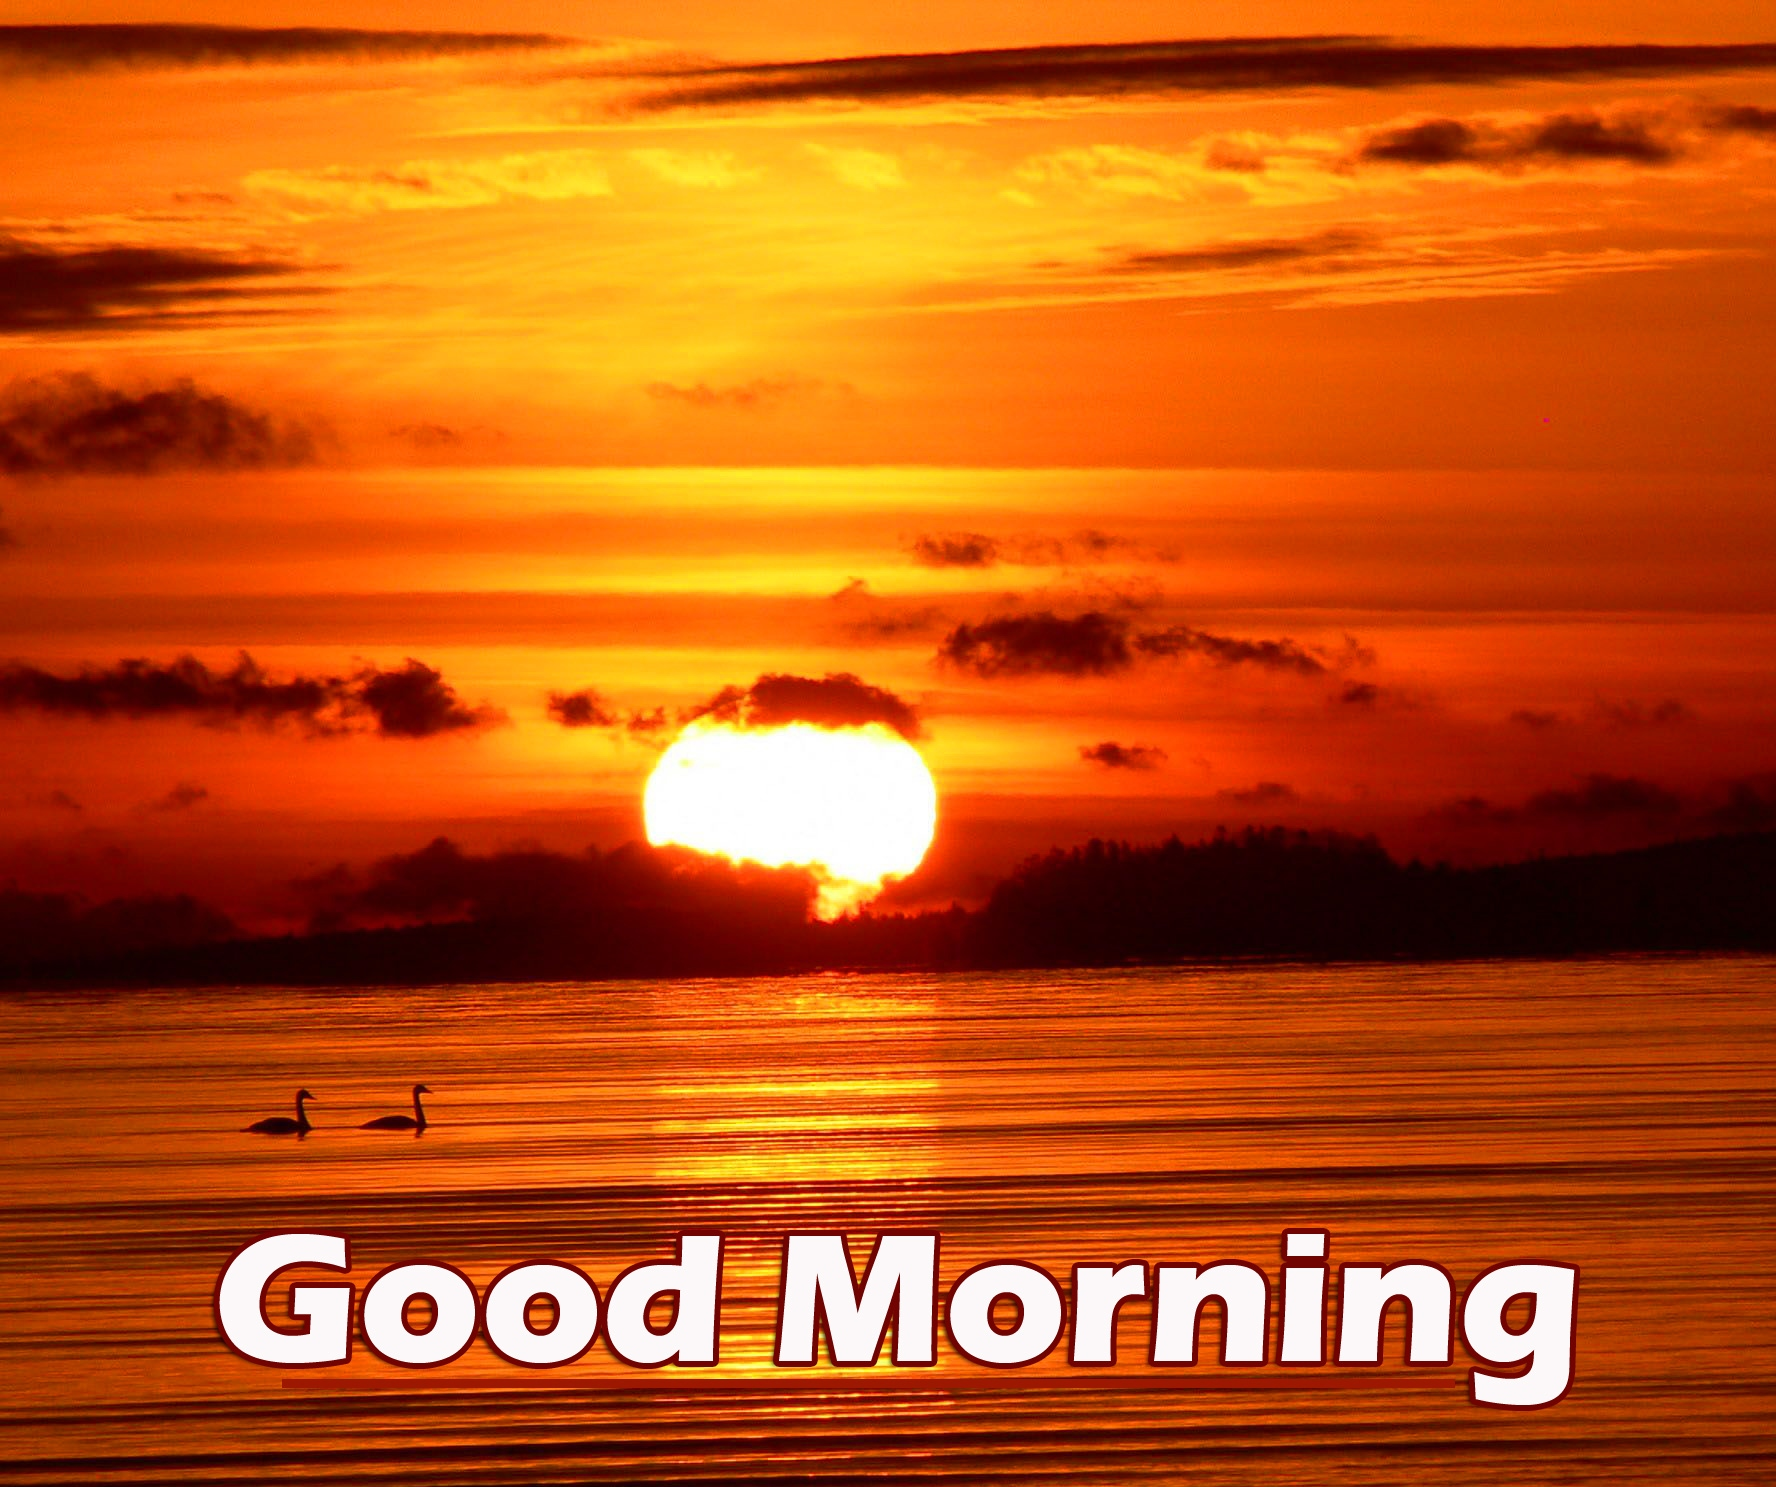 New Latest Good Morning Wallpaper Pics Download